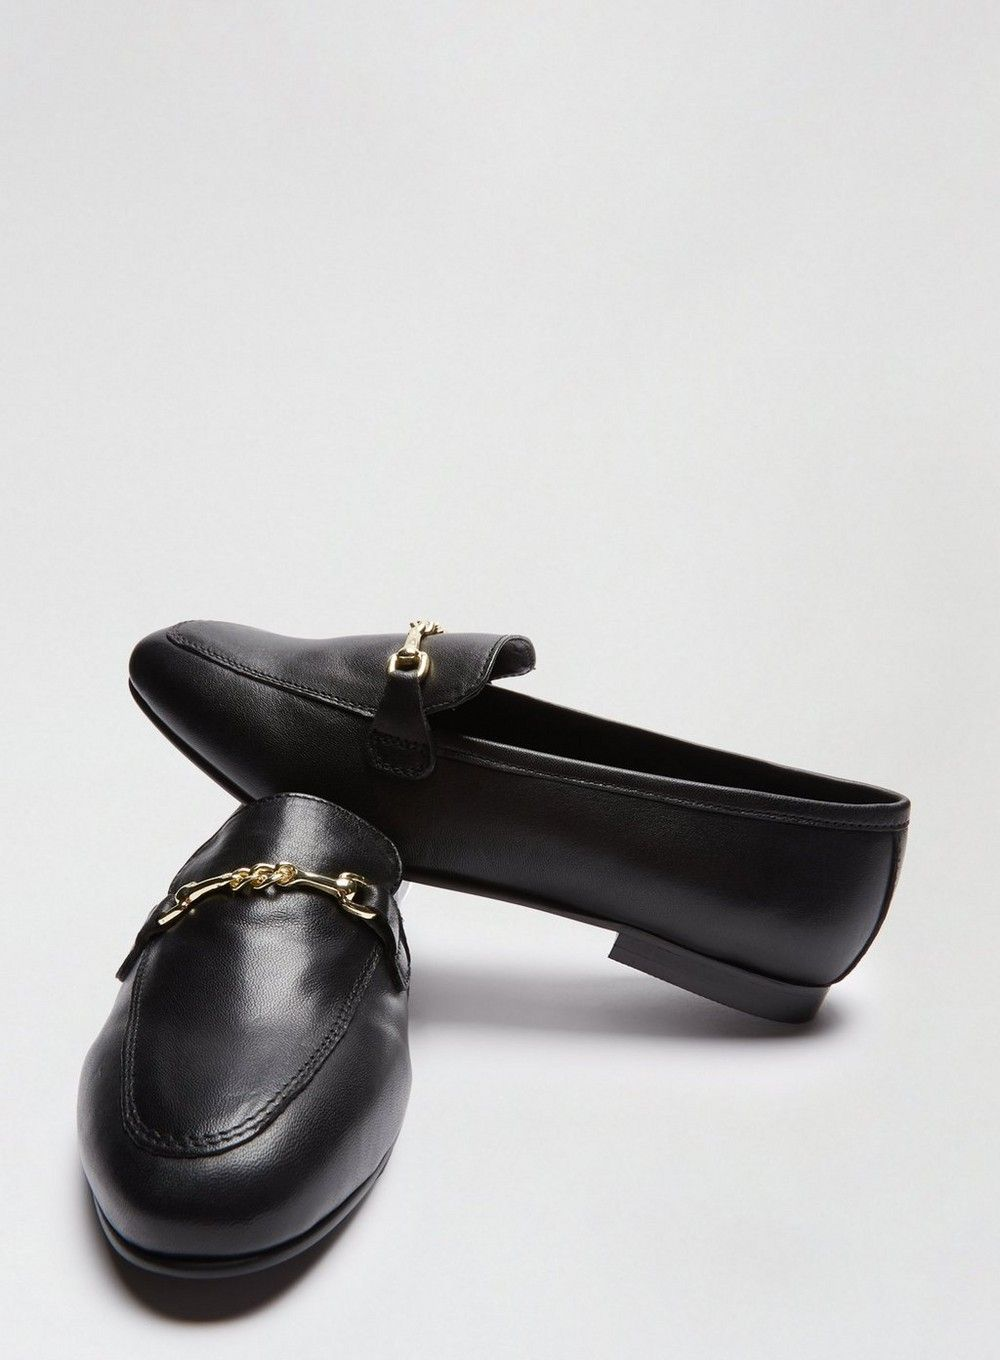 Dorothy Perkins Womens Black Liza Loafers Comfort Slip On Flats Shoes Moccasin